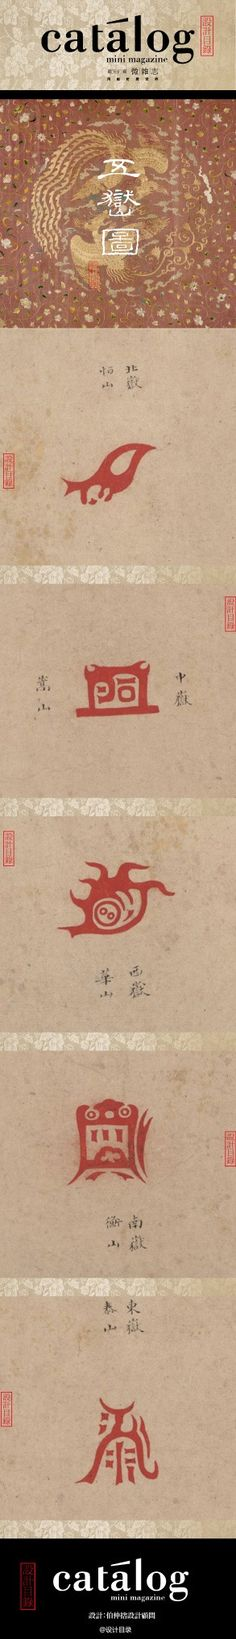 A chart of the Five Sacred Taoist mountain ranges of China:  1. Mount Heng; the North Peak; Shanxi province  2. Mount Song: the Central Peak; Henan province  3. Mount Hua: the Western Peak; Shaanxi province   4. Mount Heng( not the same as #1): the Southern Peak; Hunan province   5. Mount Tai: the Eastern Peak; Shandong province